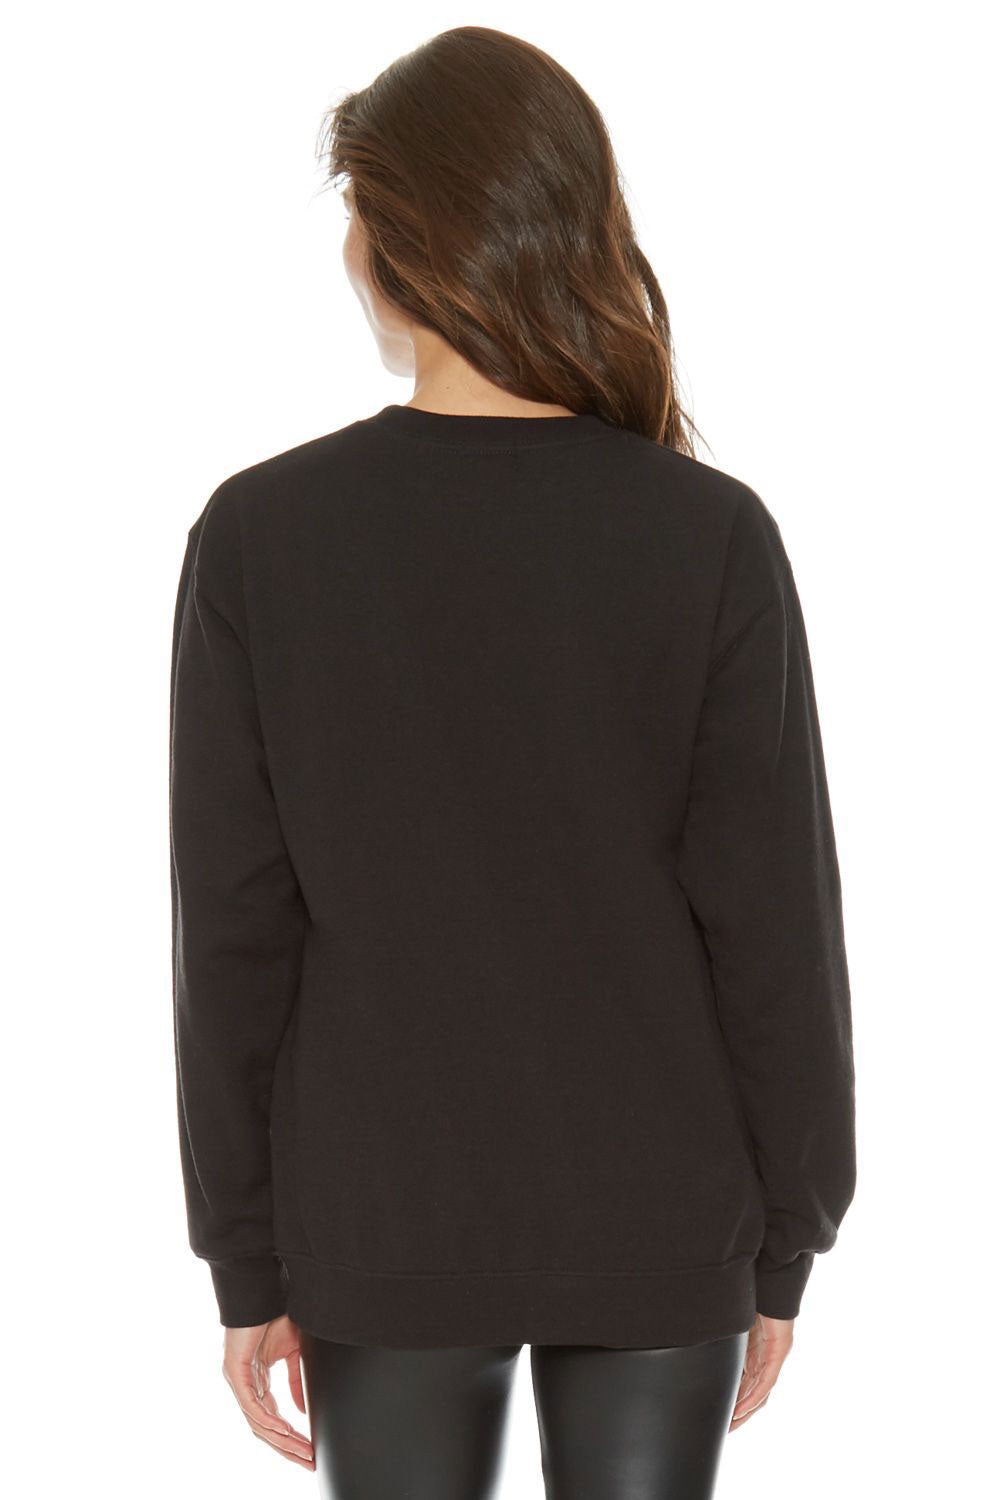 Suburban Riot Single Bells Willow Sweatshirt - Sculptique